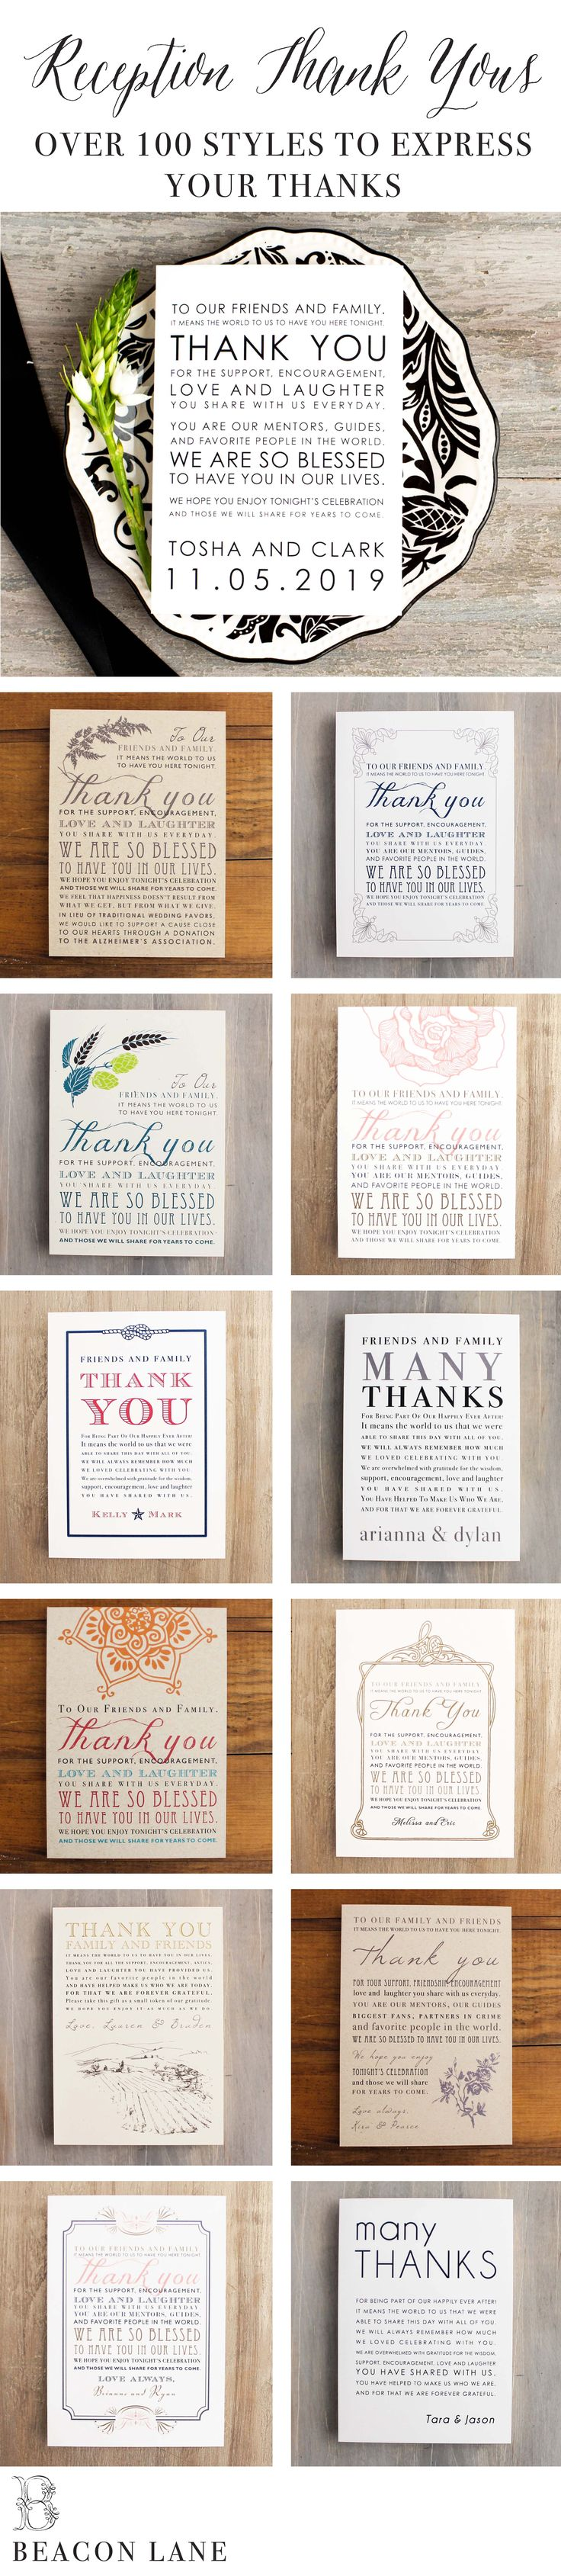 Thank You Letter After Wedding Best Free Thank You Cards